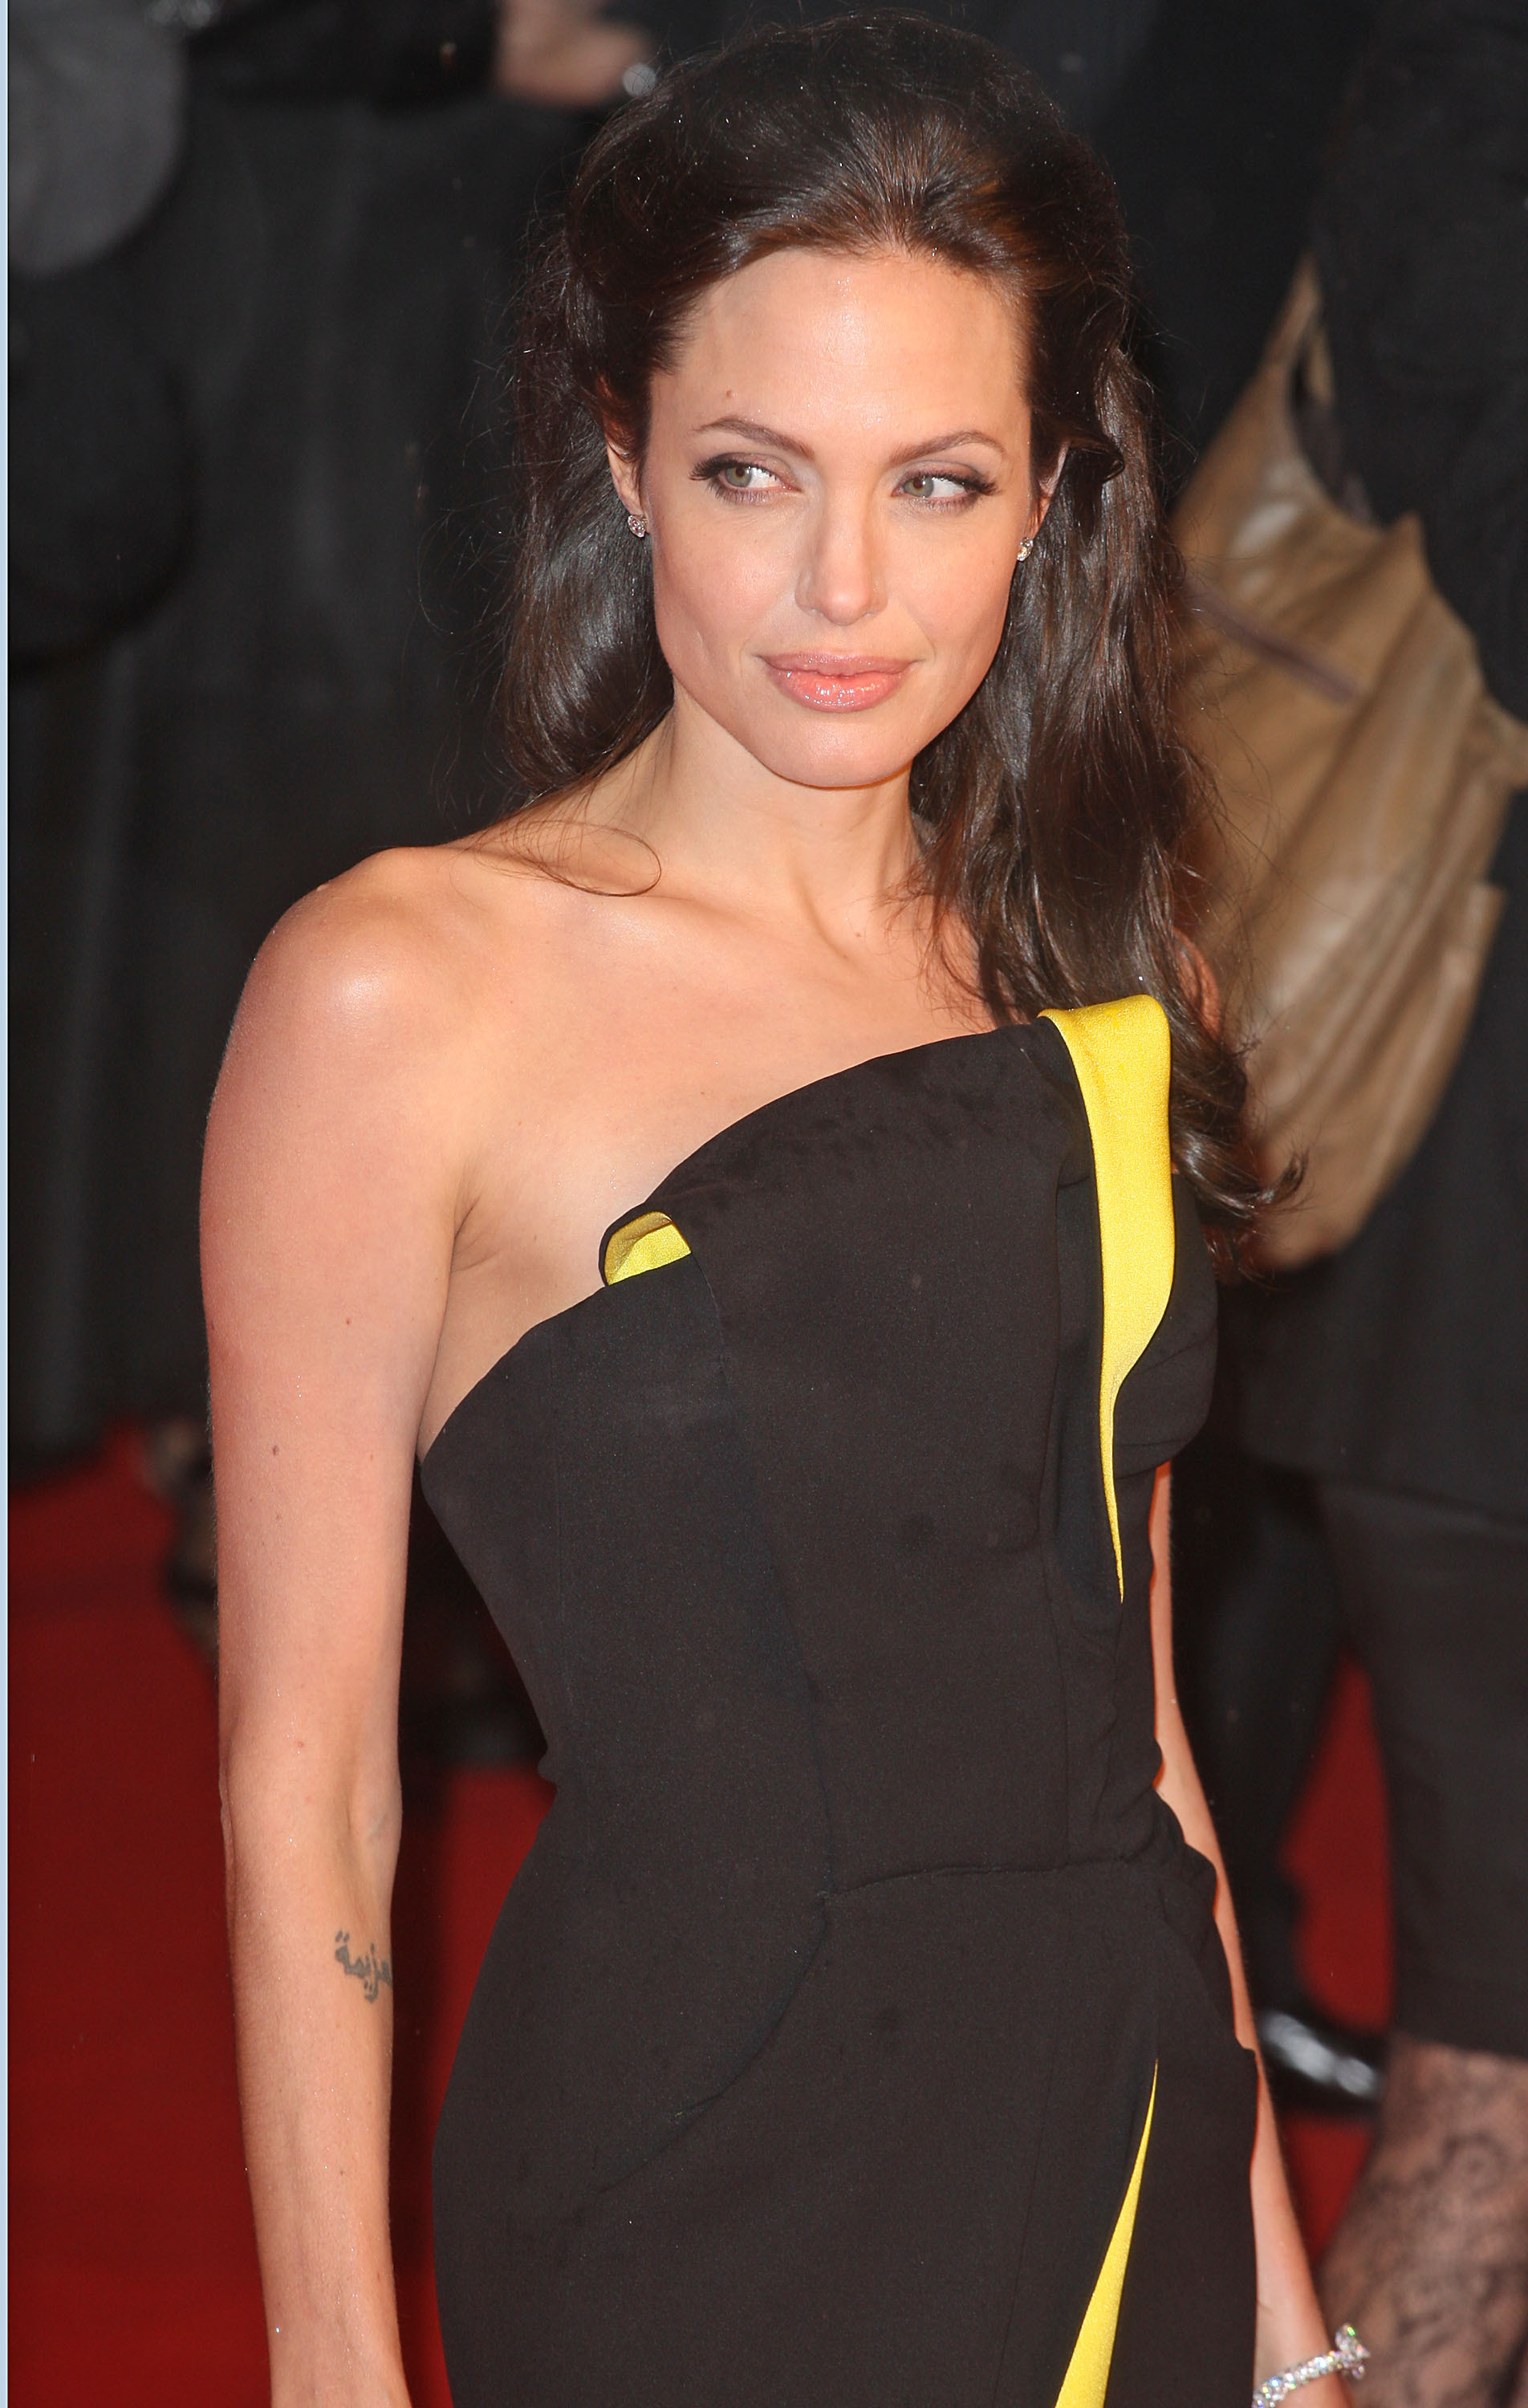 All Celebrity Fakes: fake nude celebrity photos and free ...